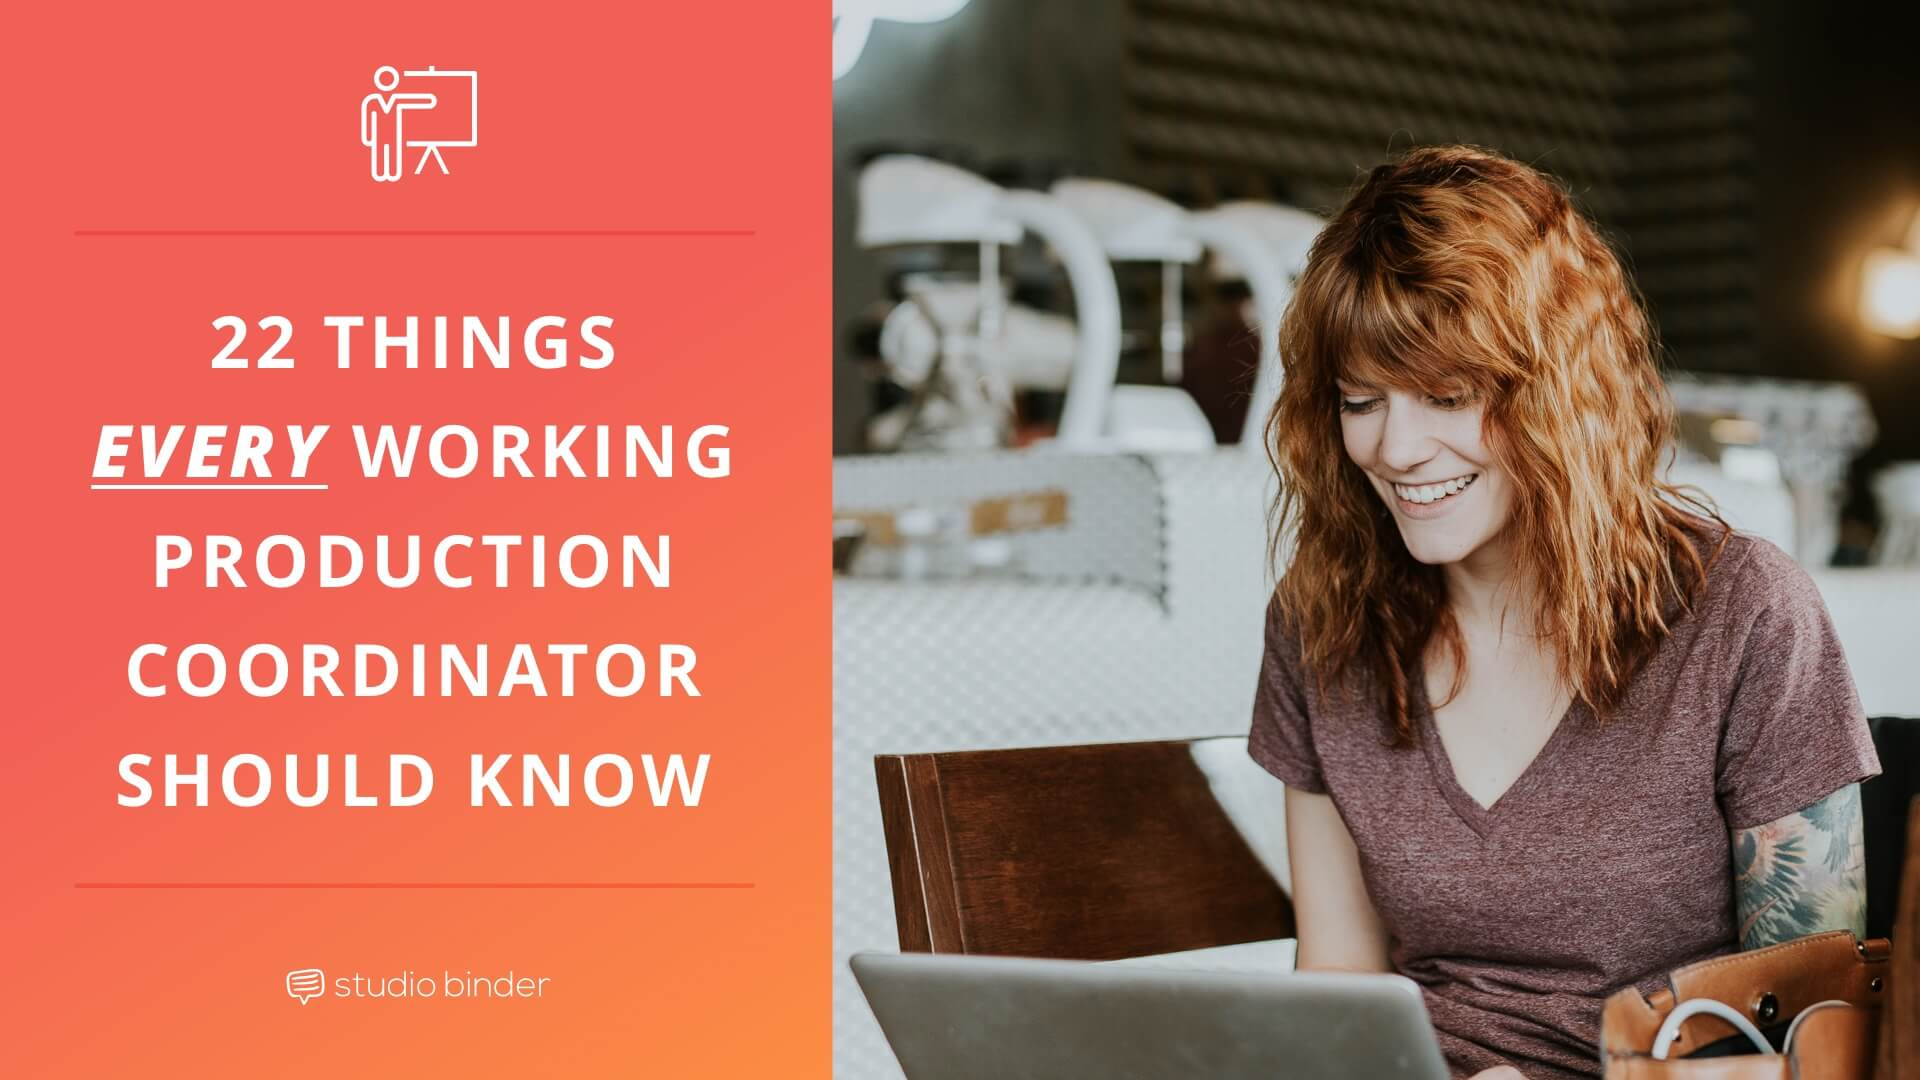 22 Things Every Working Production Coordinator Should Know - Social Image - StudioBinder